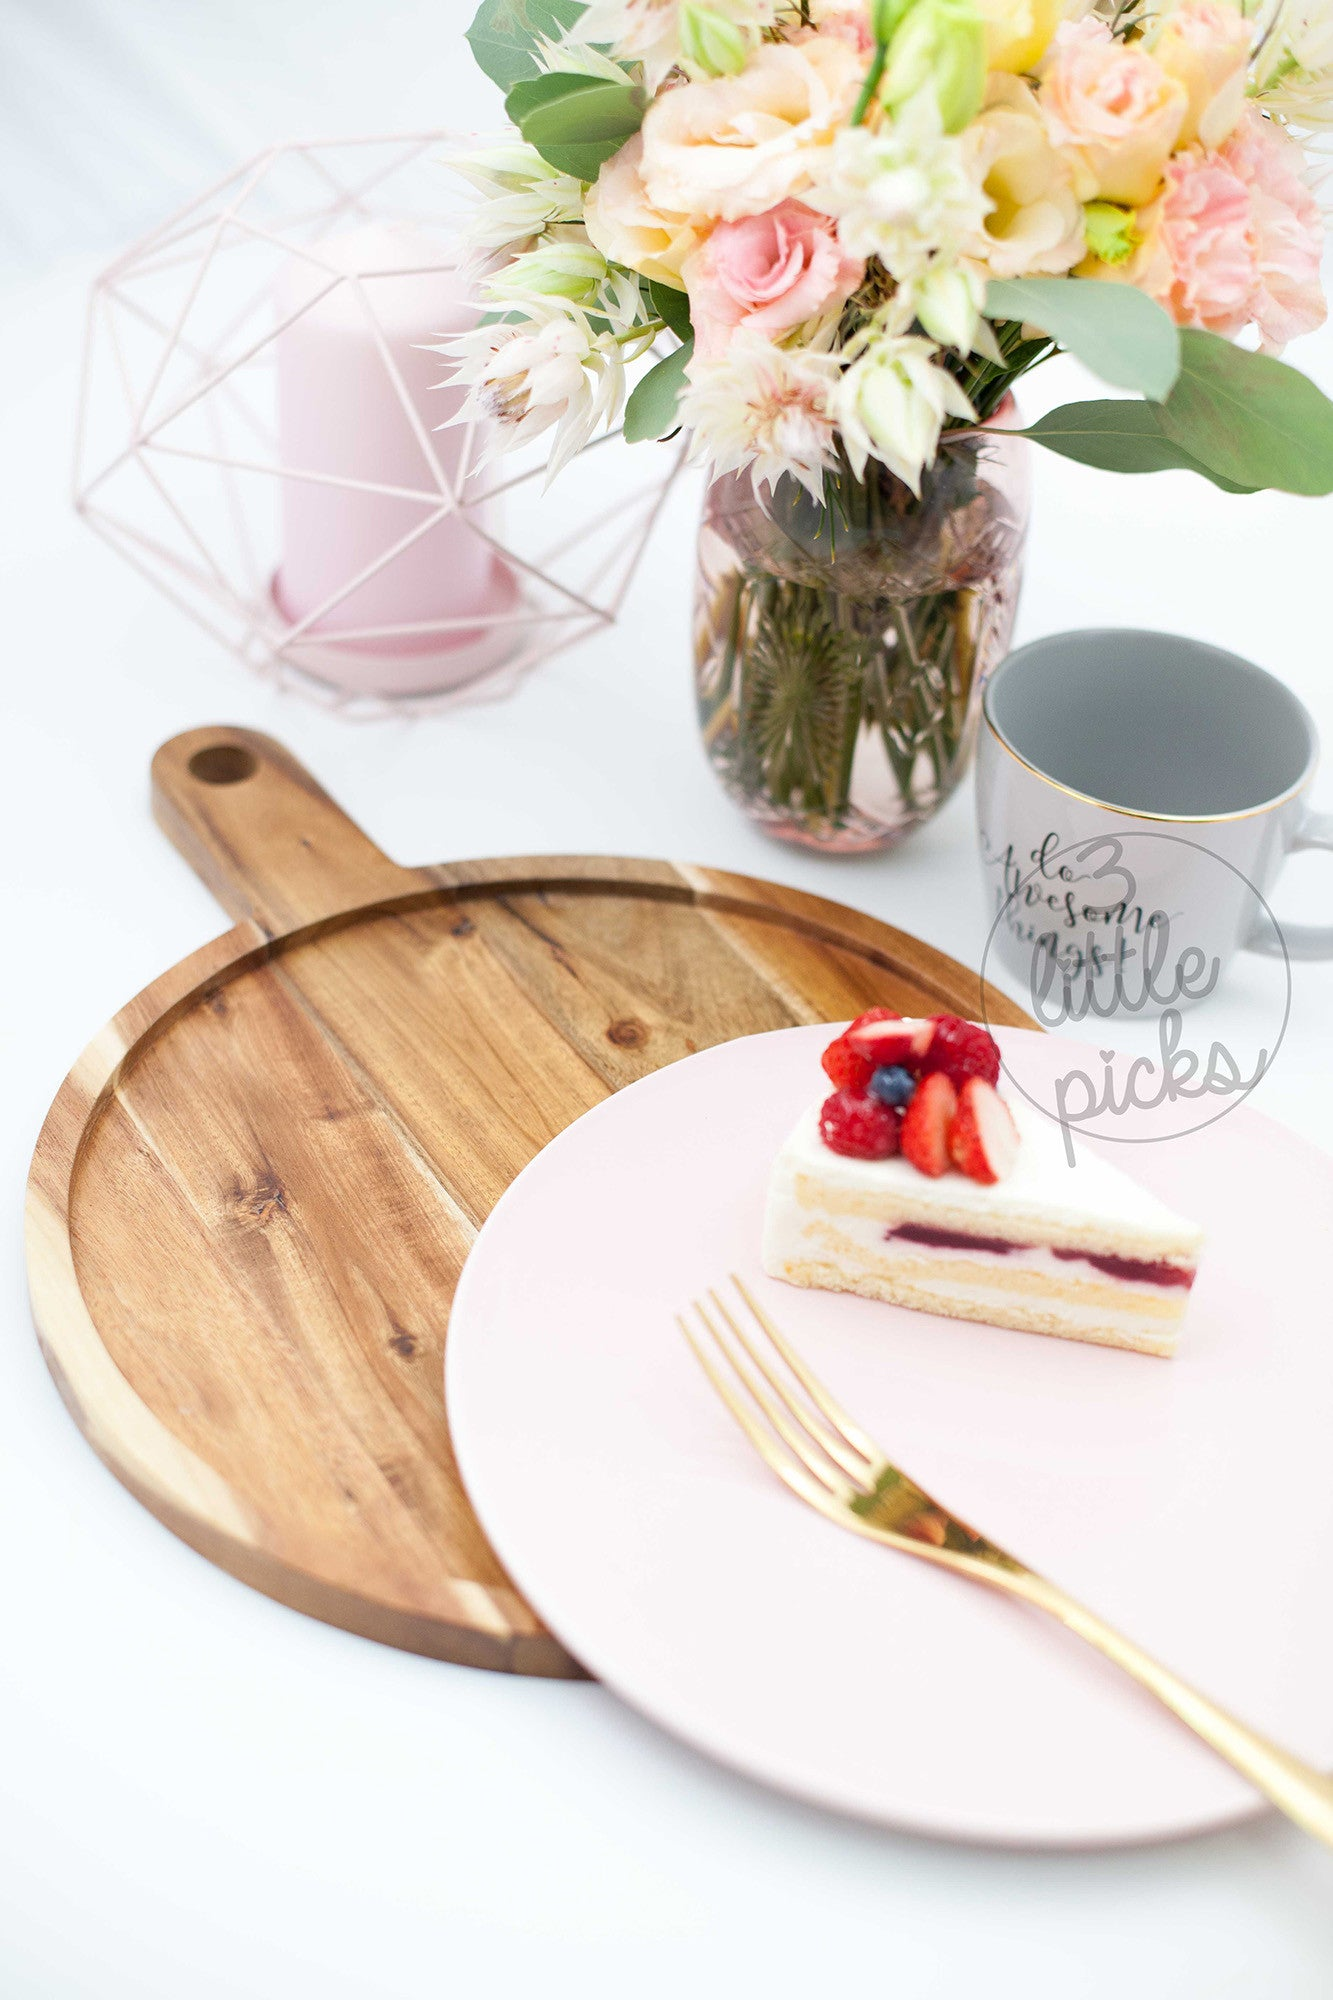 Alberte Serving Board, Serveware, Bloomingville - 3LittlePicks